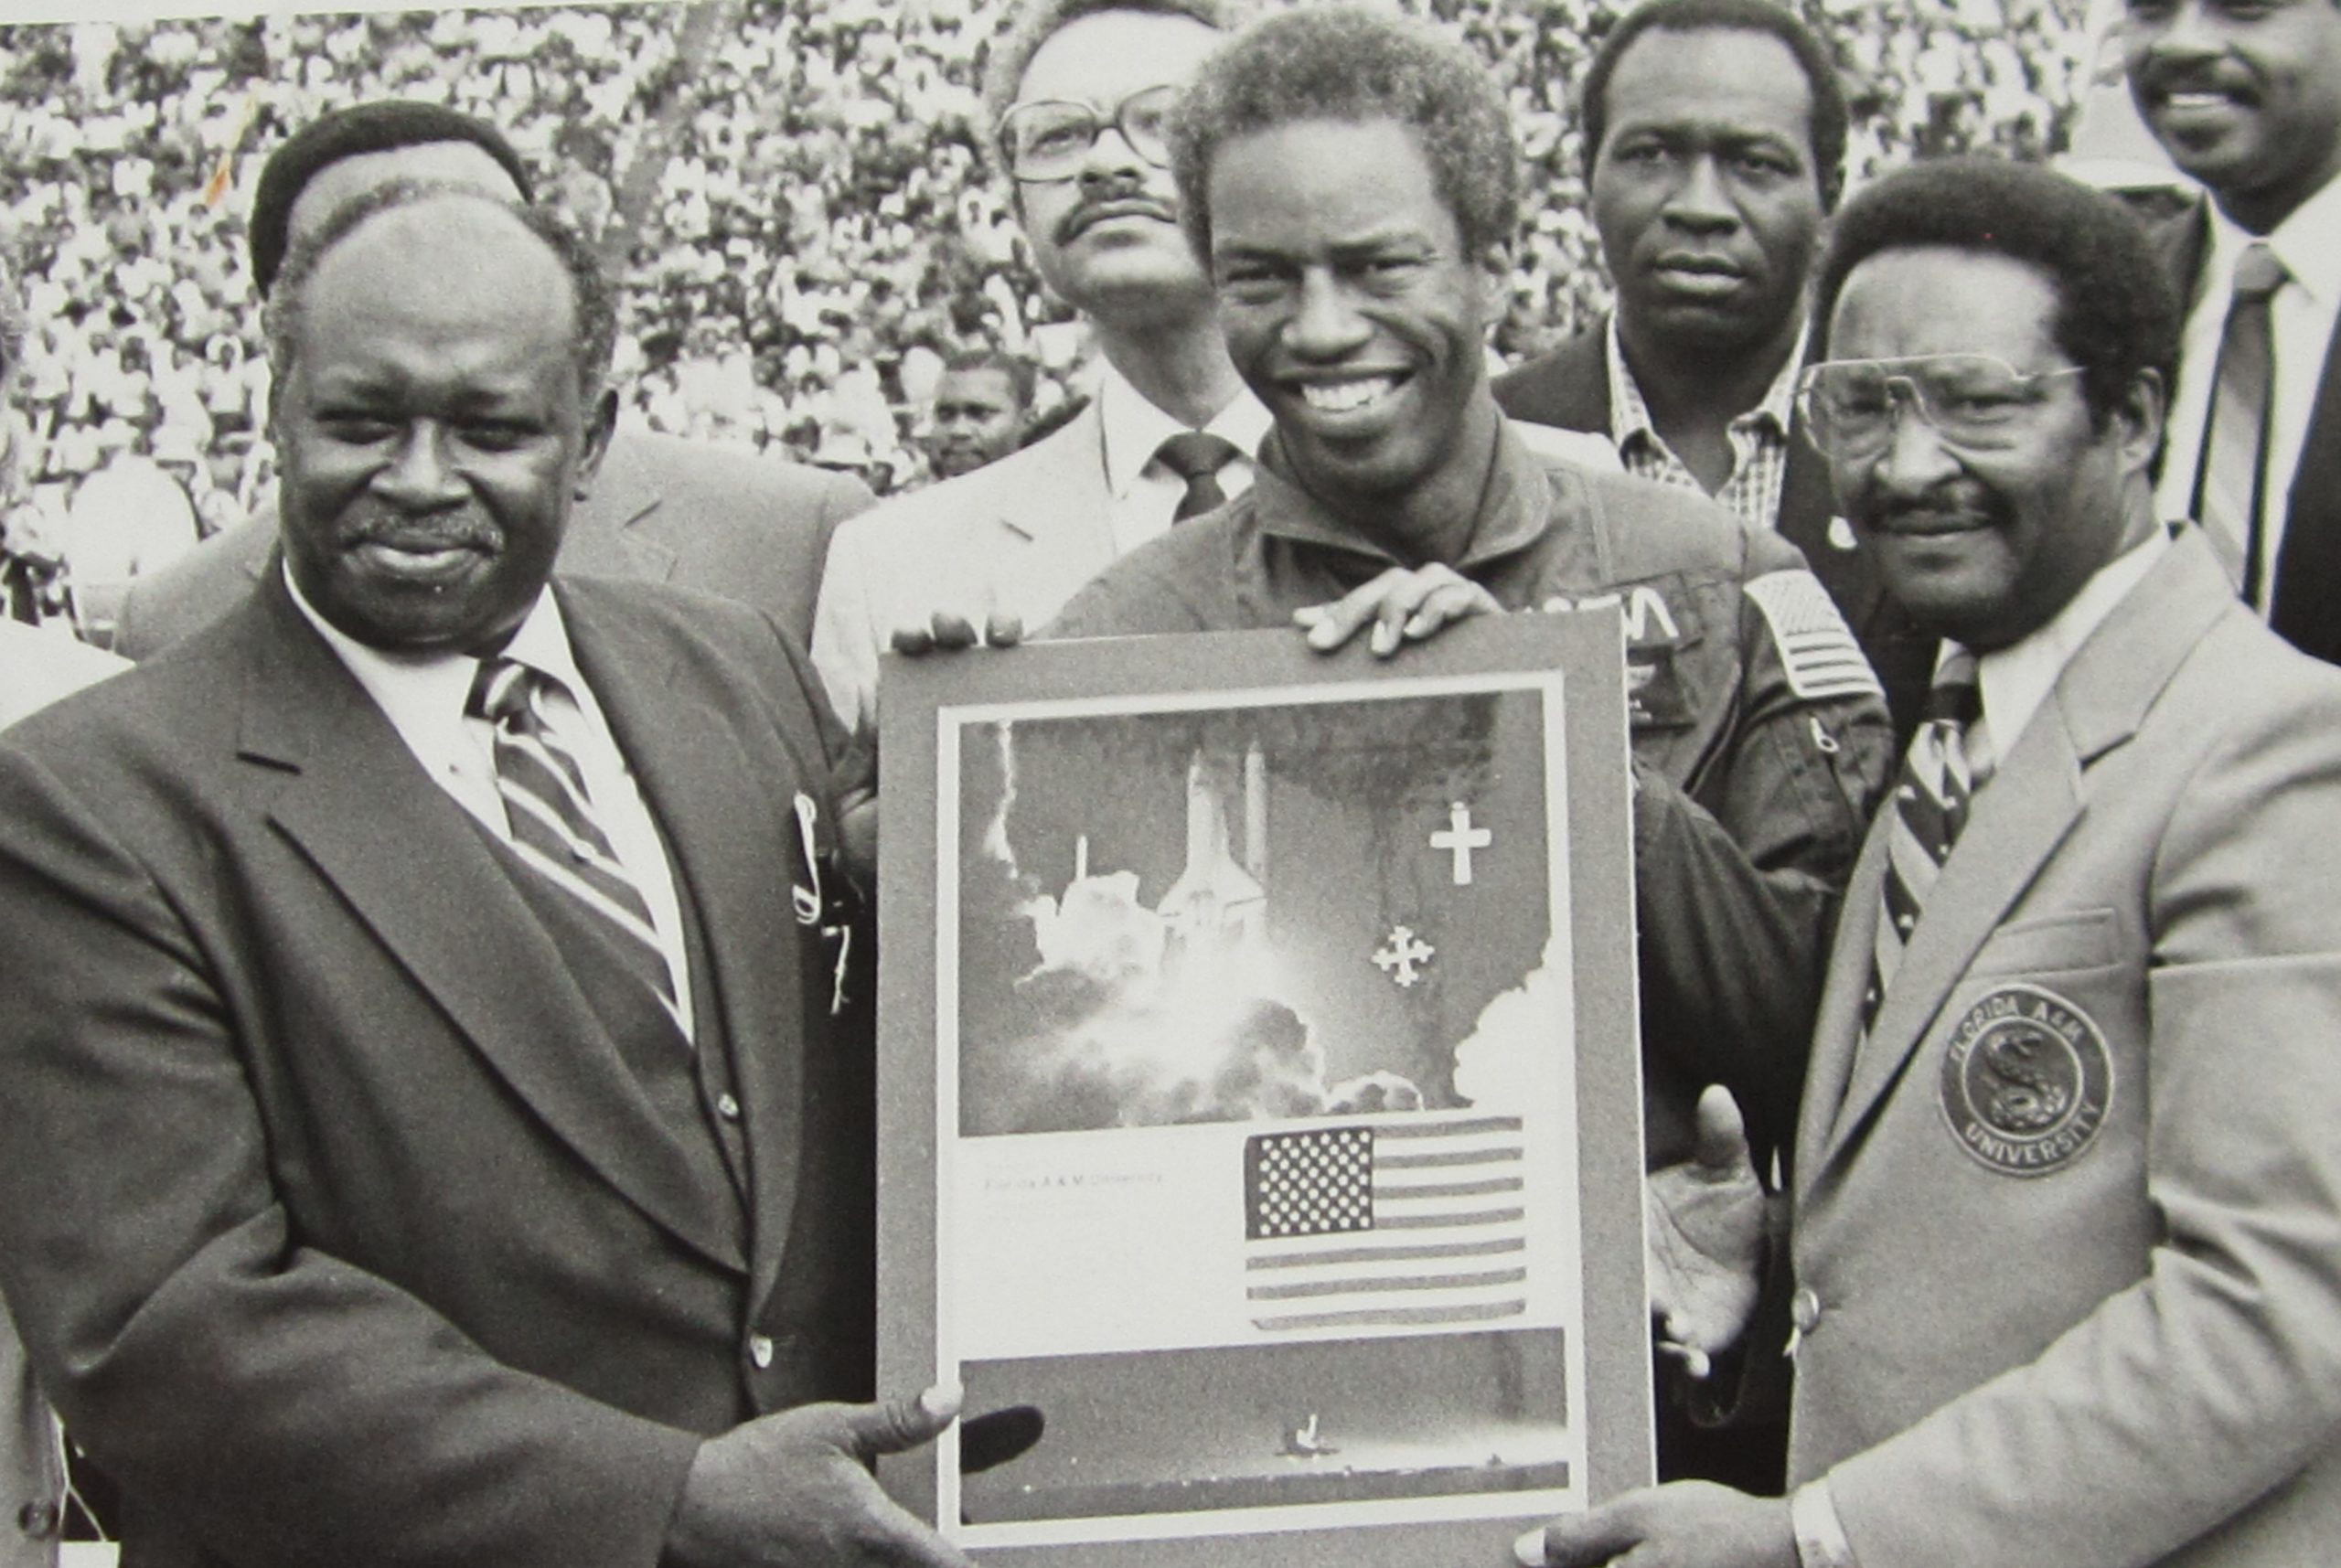 James N. Eaton, Astronaut Guion 'Guy' Stewart Bluford, Jr., and Walter L. Smith